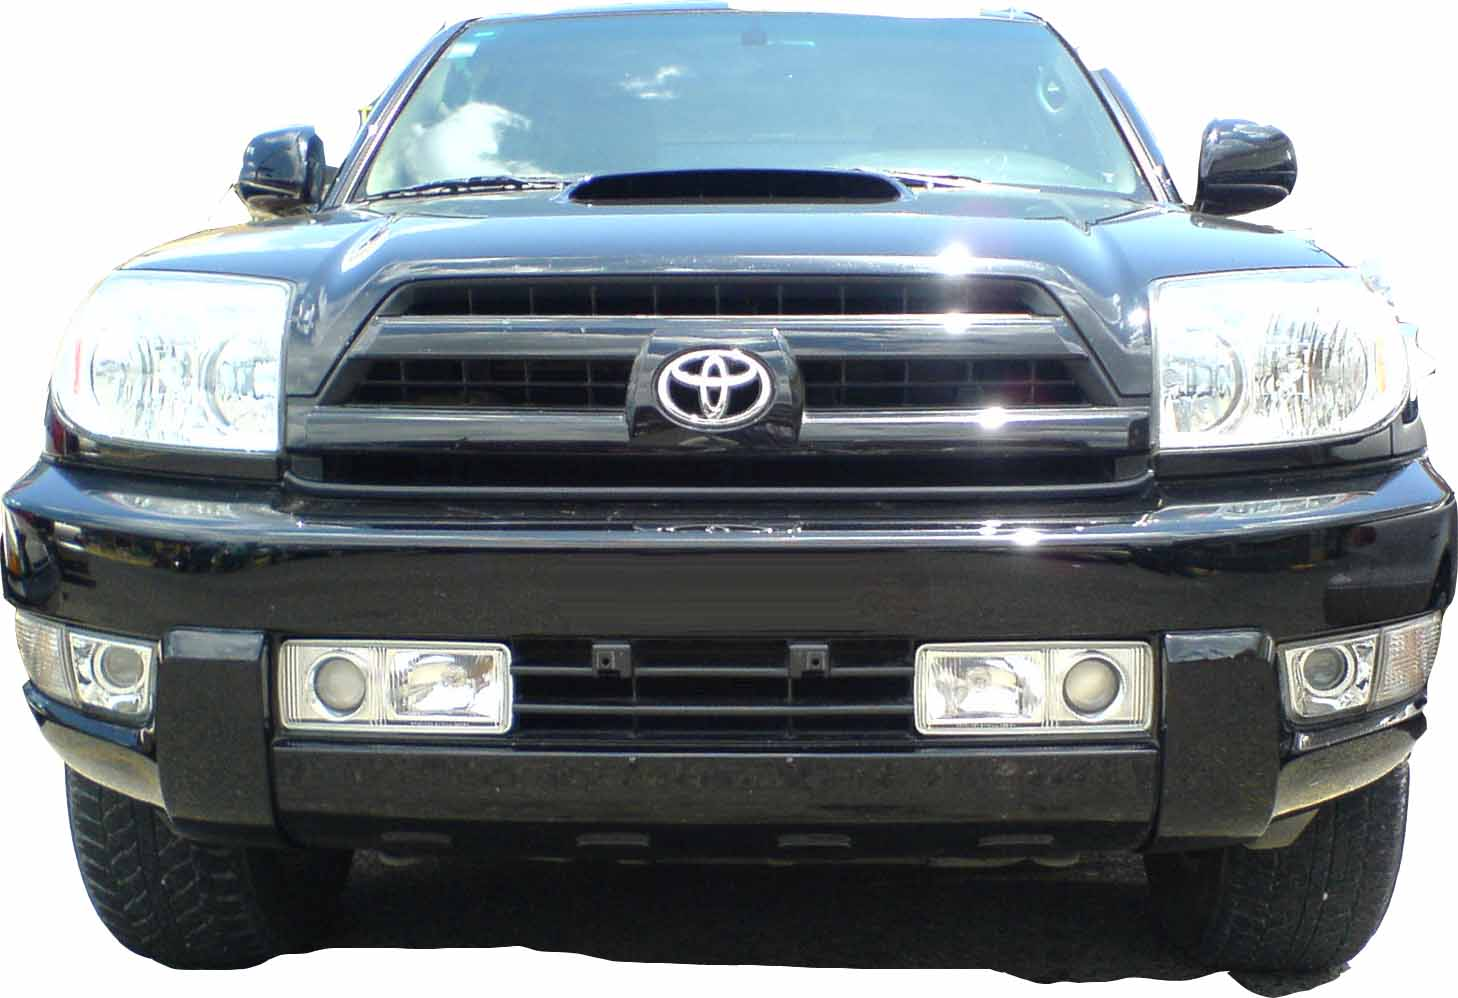 Oemlooking Auxiliary Light Toyota 4runner Largest. Attached Piaa 1095 Kb. Toyota. Toyota 4runner Bumper Guard Diagram At Scoala.co